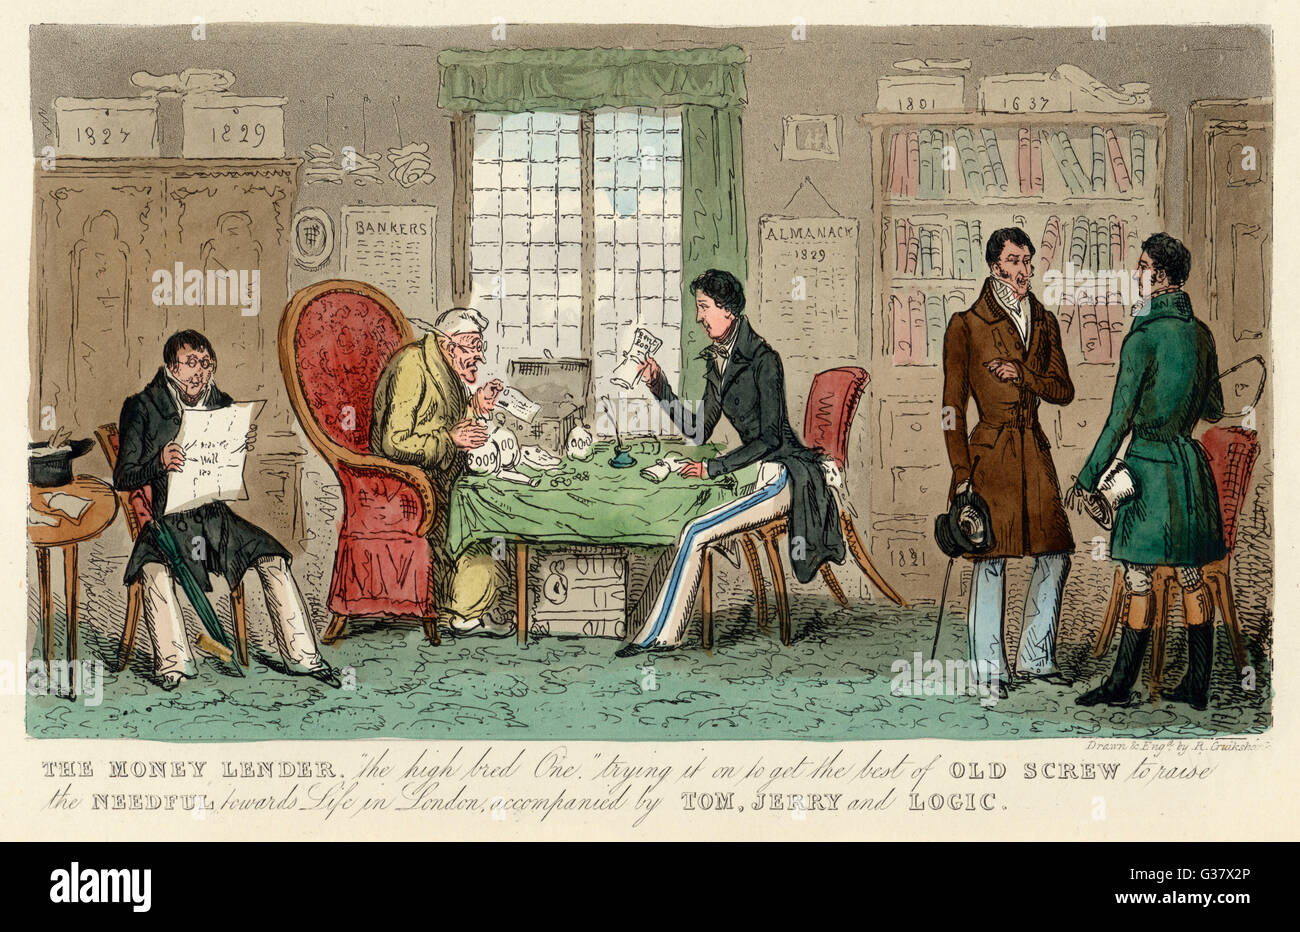 A visit to a money lender         Date: 1828 Stock Photo